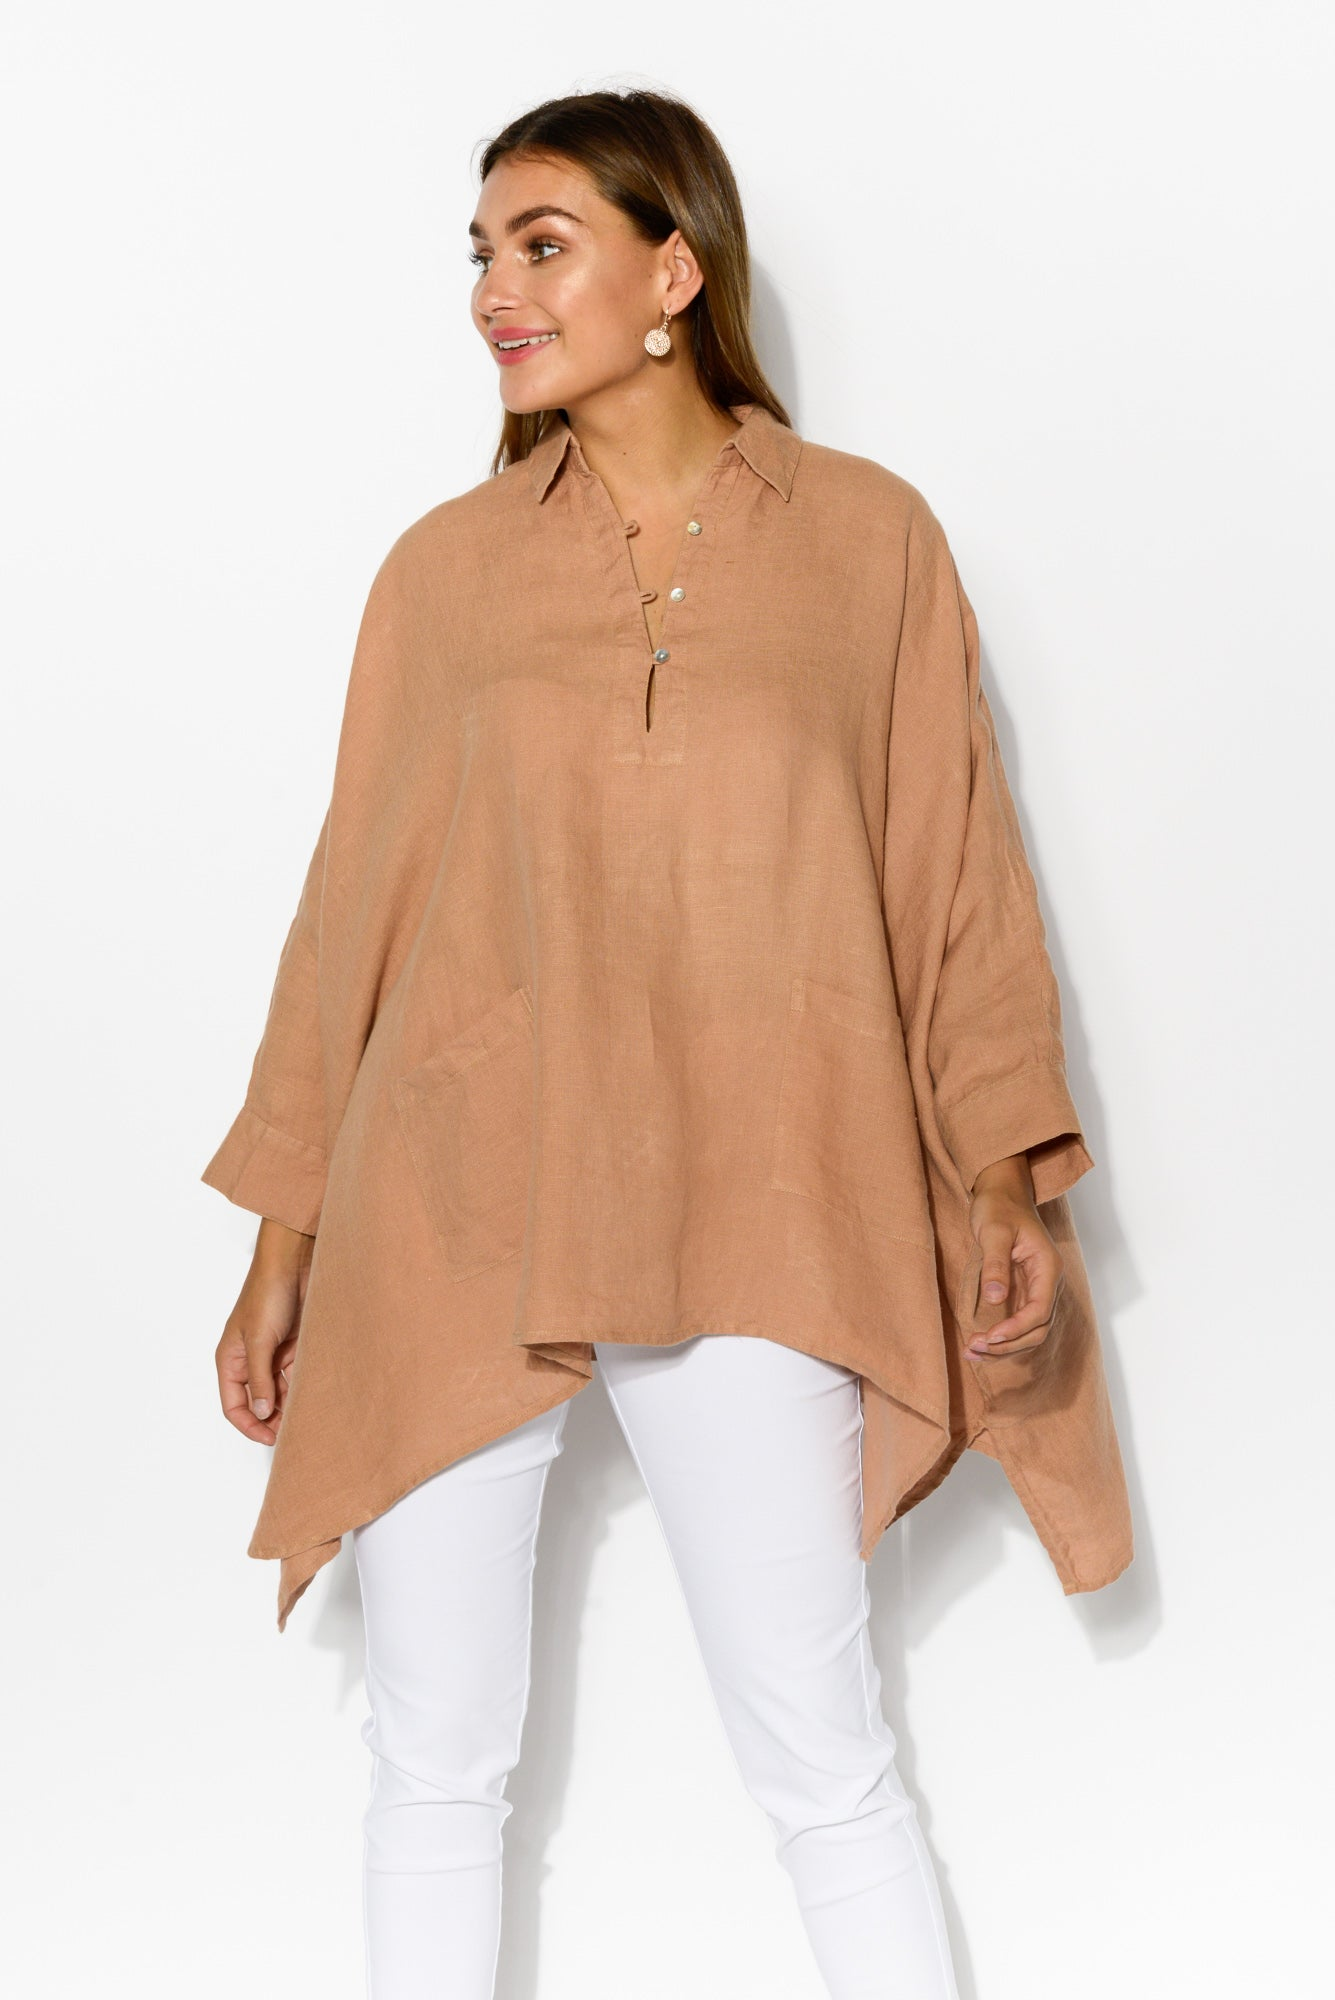 Frankie Tan Linen Top - Blue Bungalow